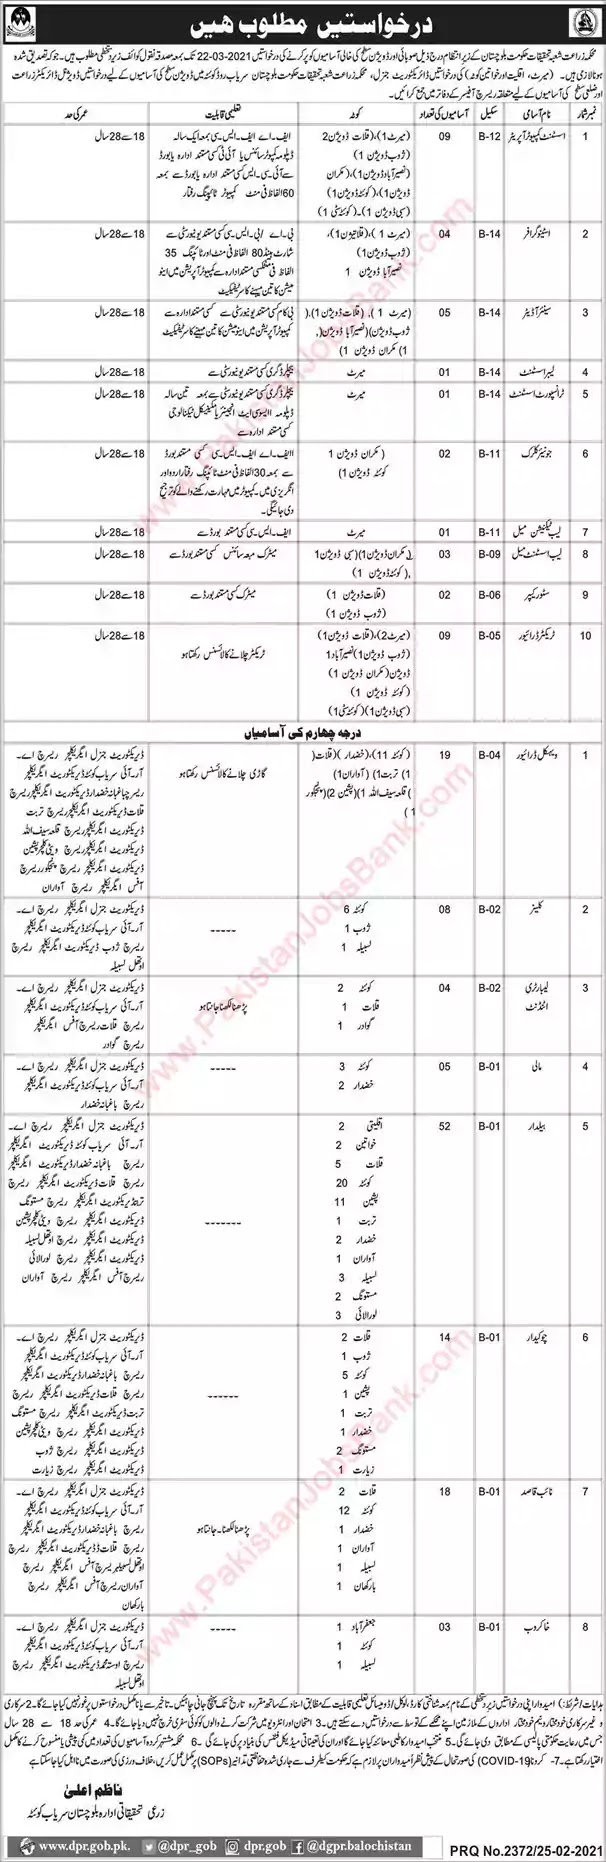 Latest Jobs in Pakistan Agriculture Research Institute Balochistan Jobs 2021